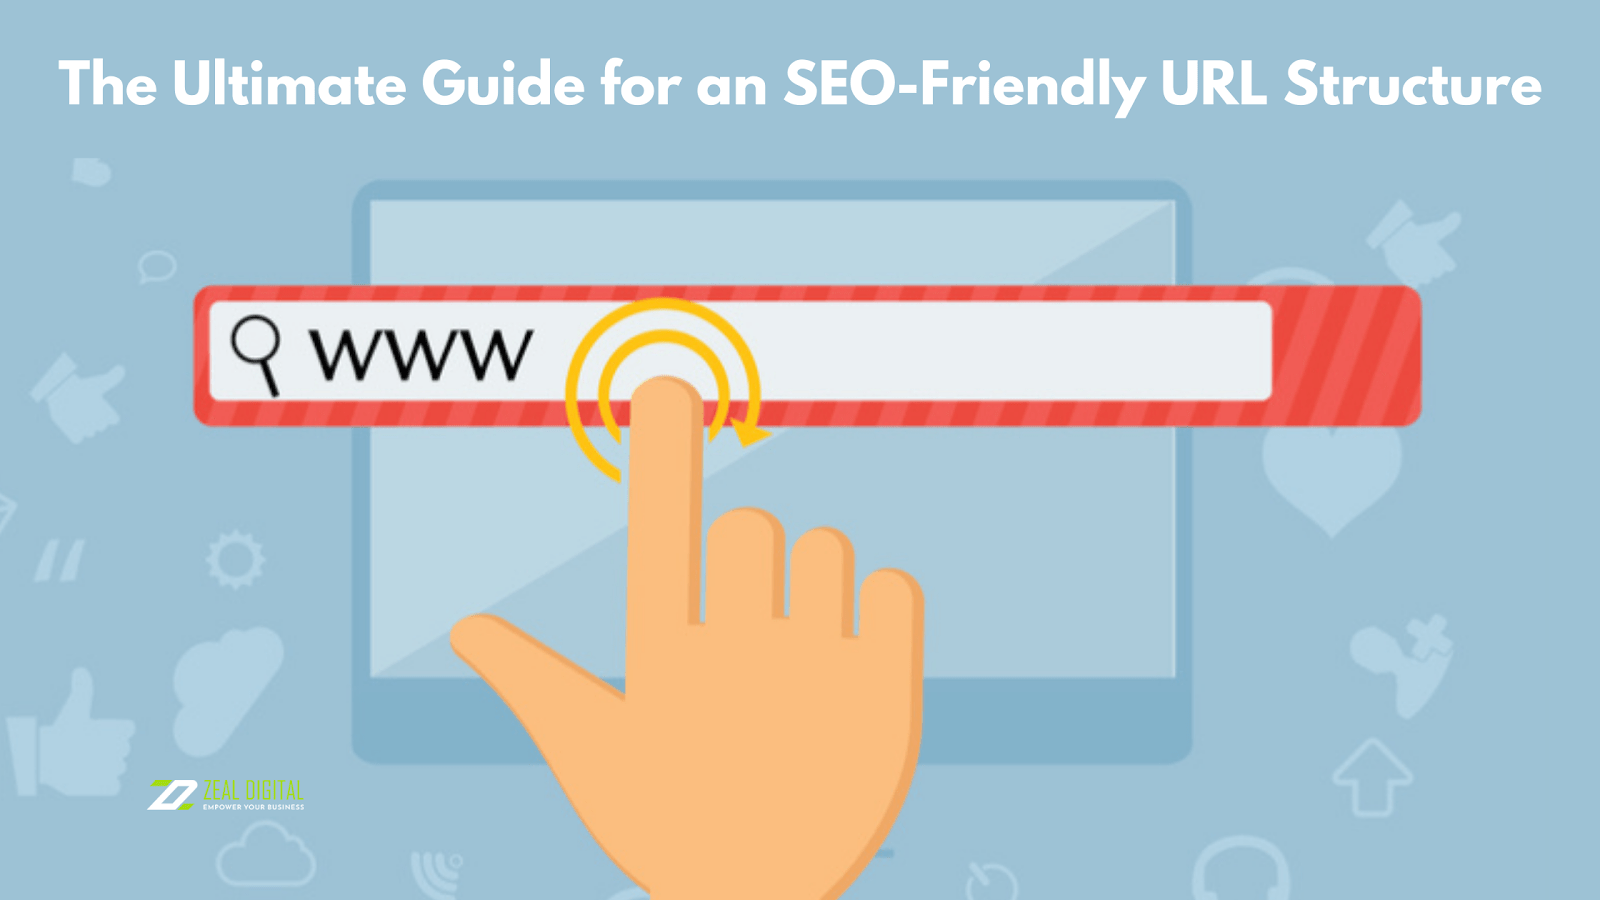 Guide for an SEO-Friendly URL Structure